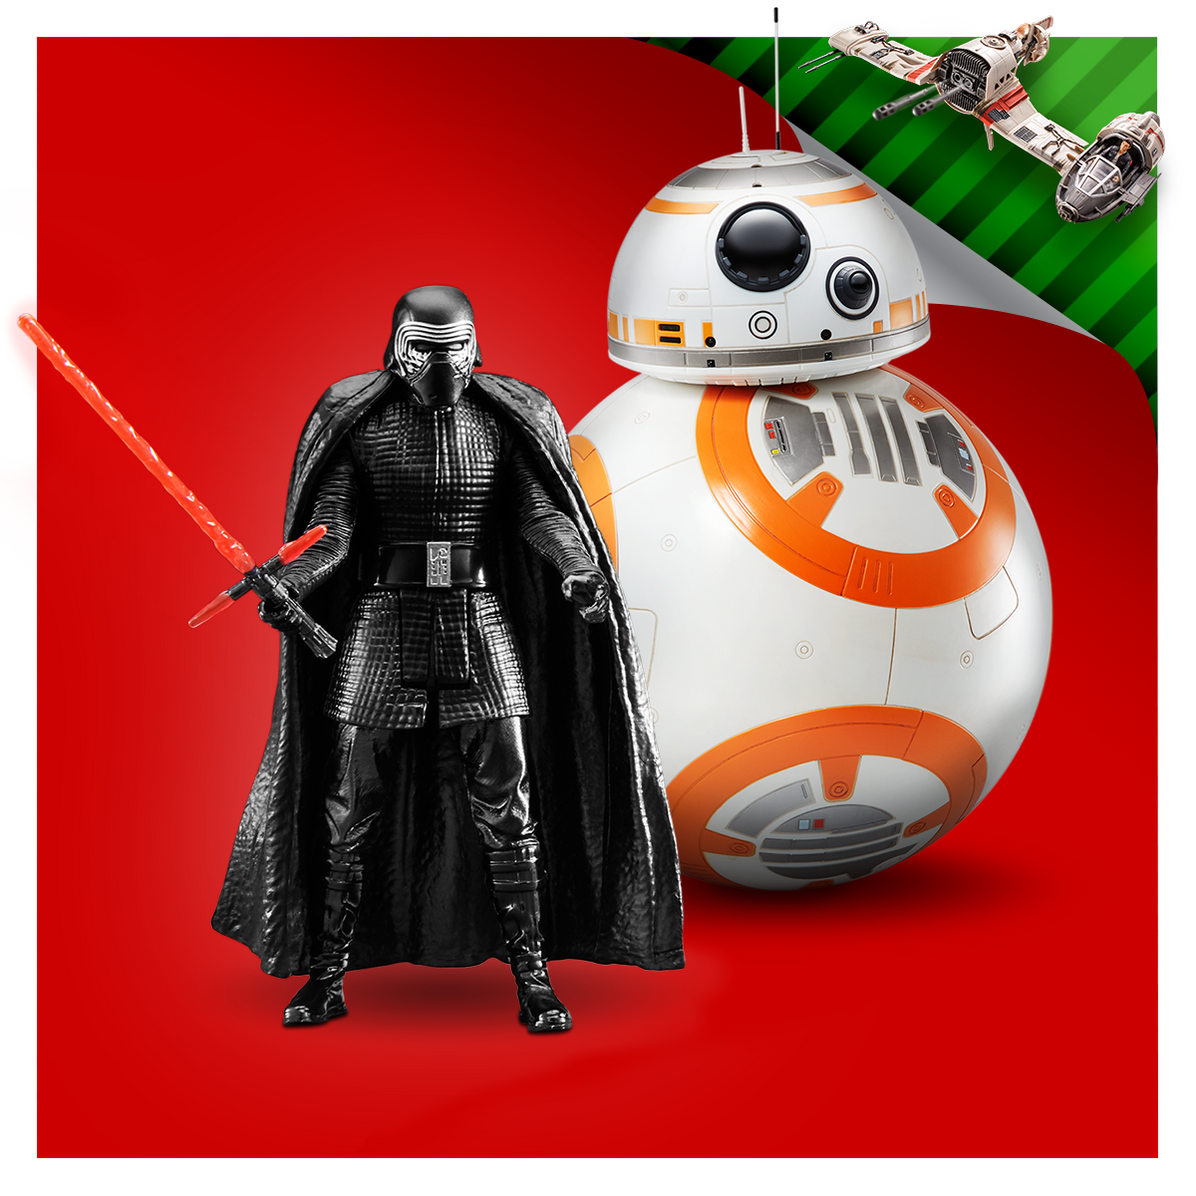 Target Toy Guide : Top toys hot of the year target